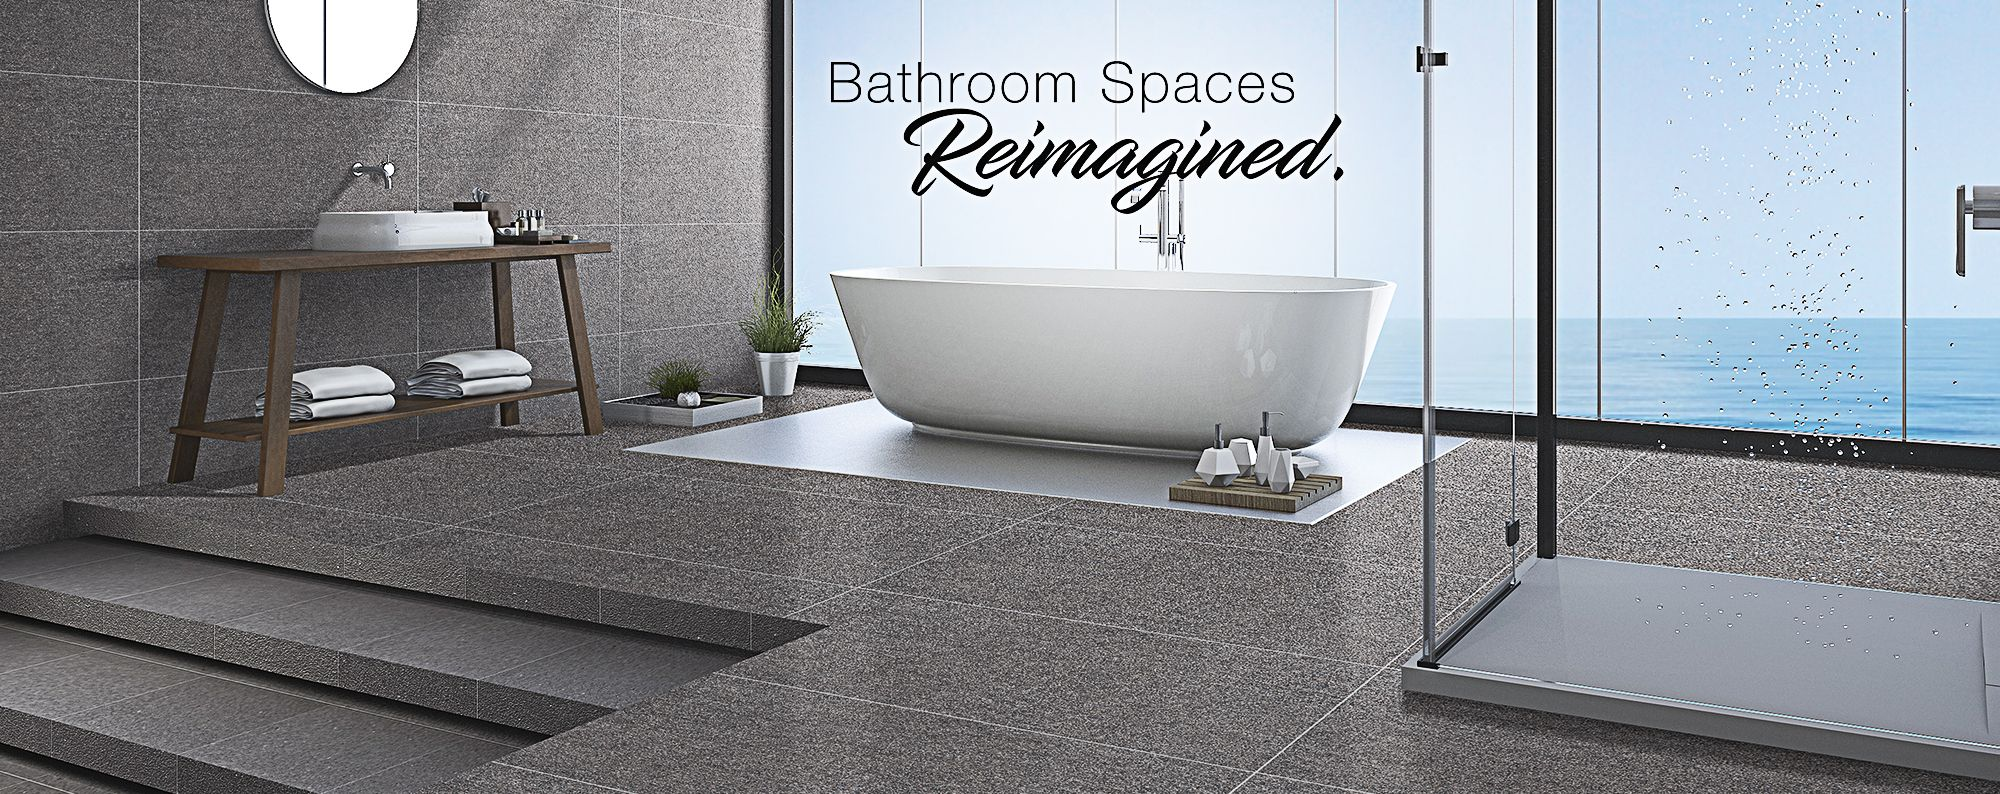 Washroom Tiles Largest Collection Bathroom Tiles In India Somany Ceramics